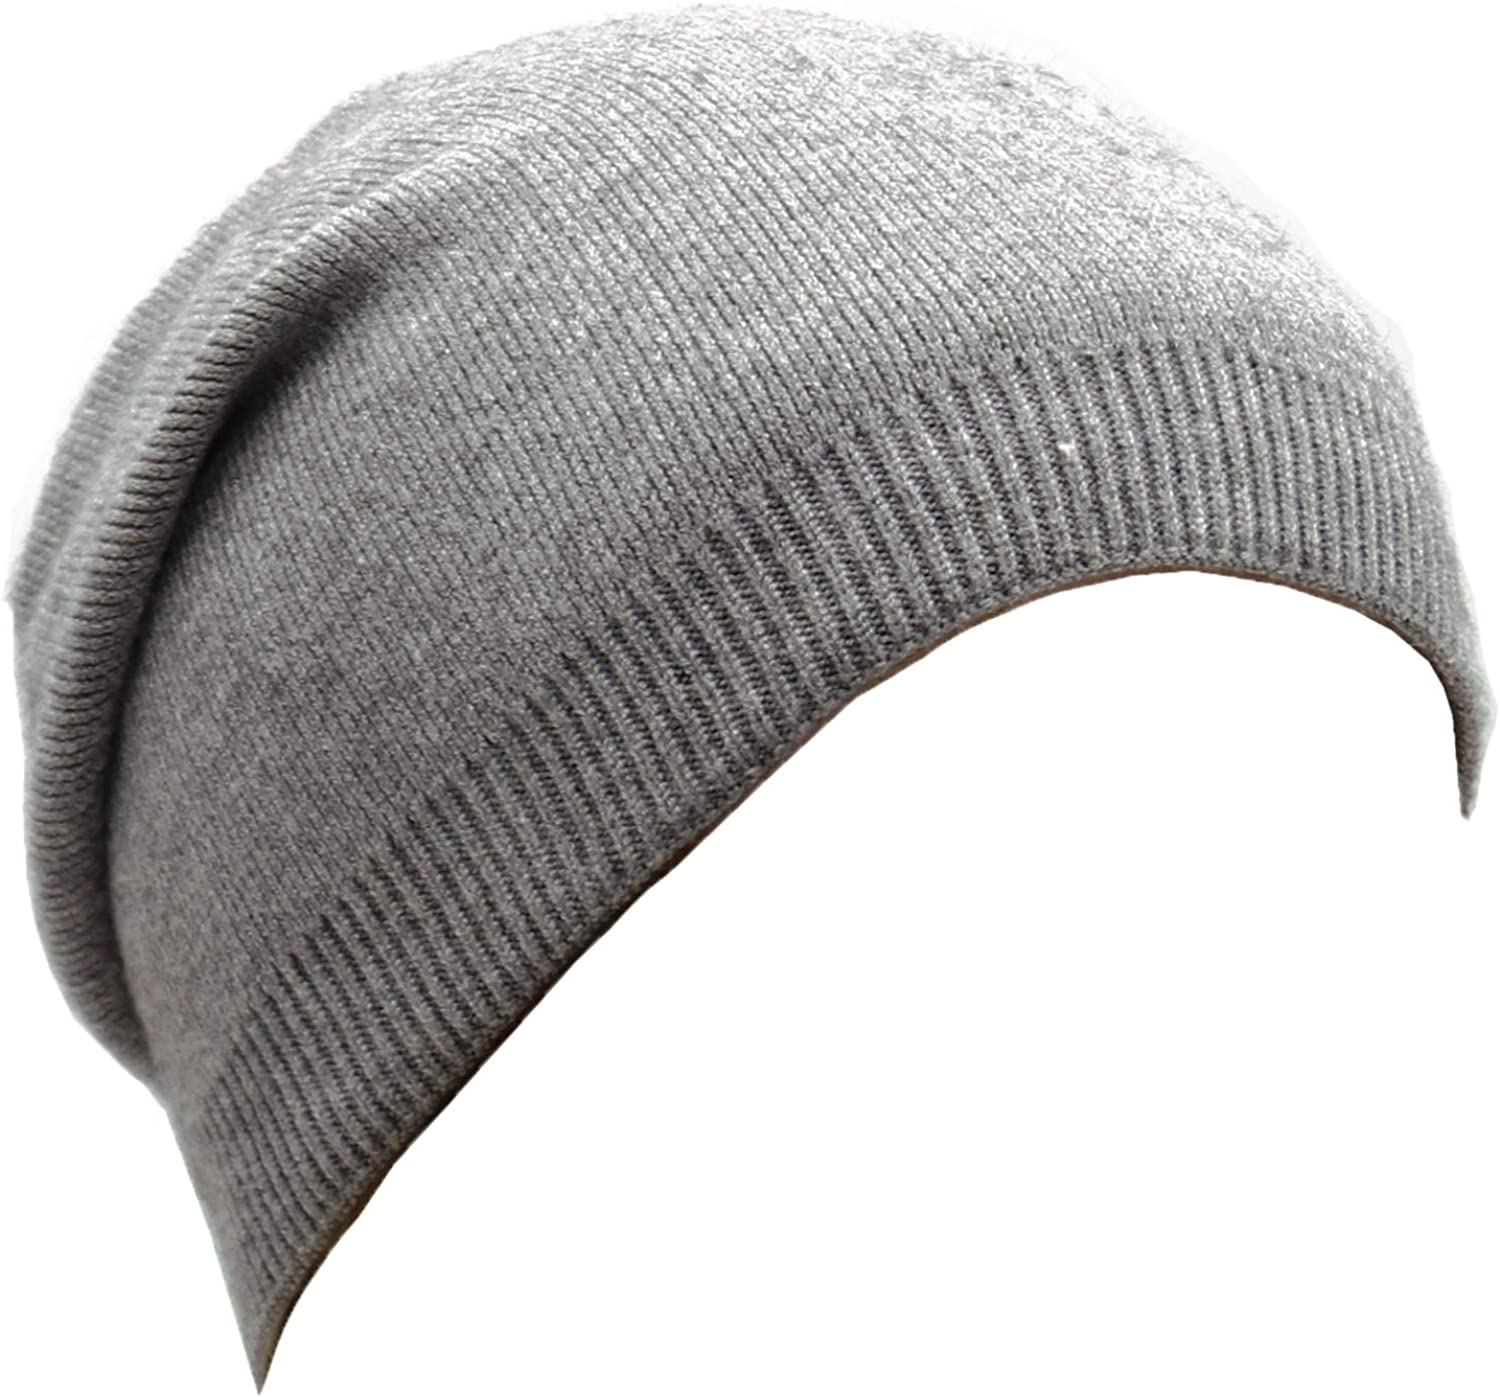 Wheebo Beanie Hat Cashmere Stretch Skull Ski Cap for Women Men -Winter Knit Hat Solid Color Unisex Style